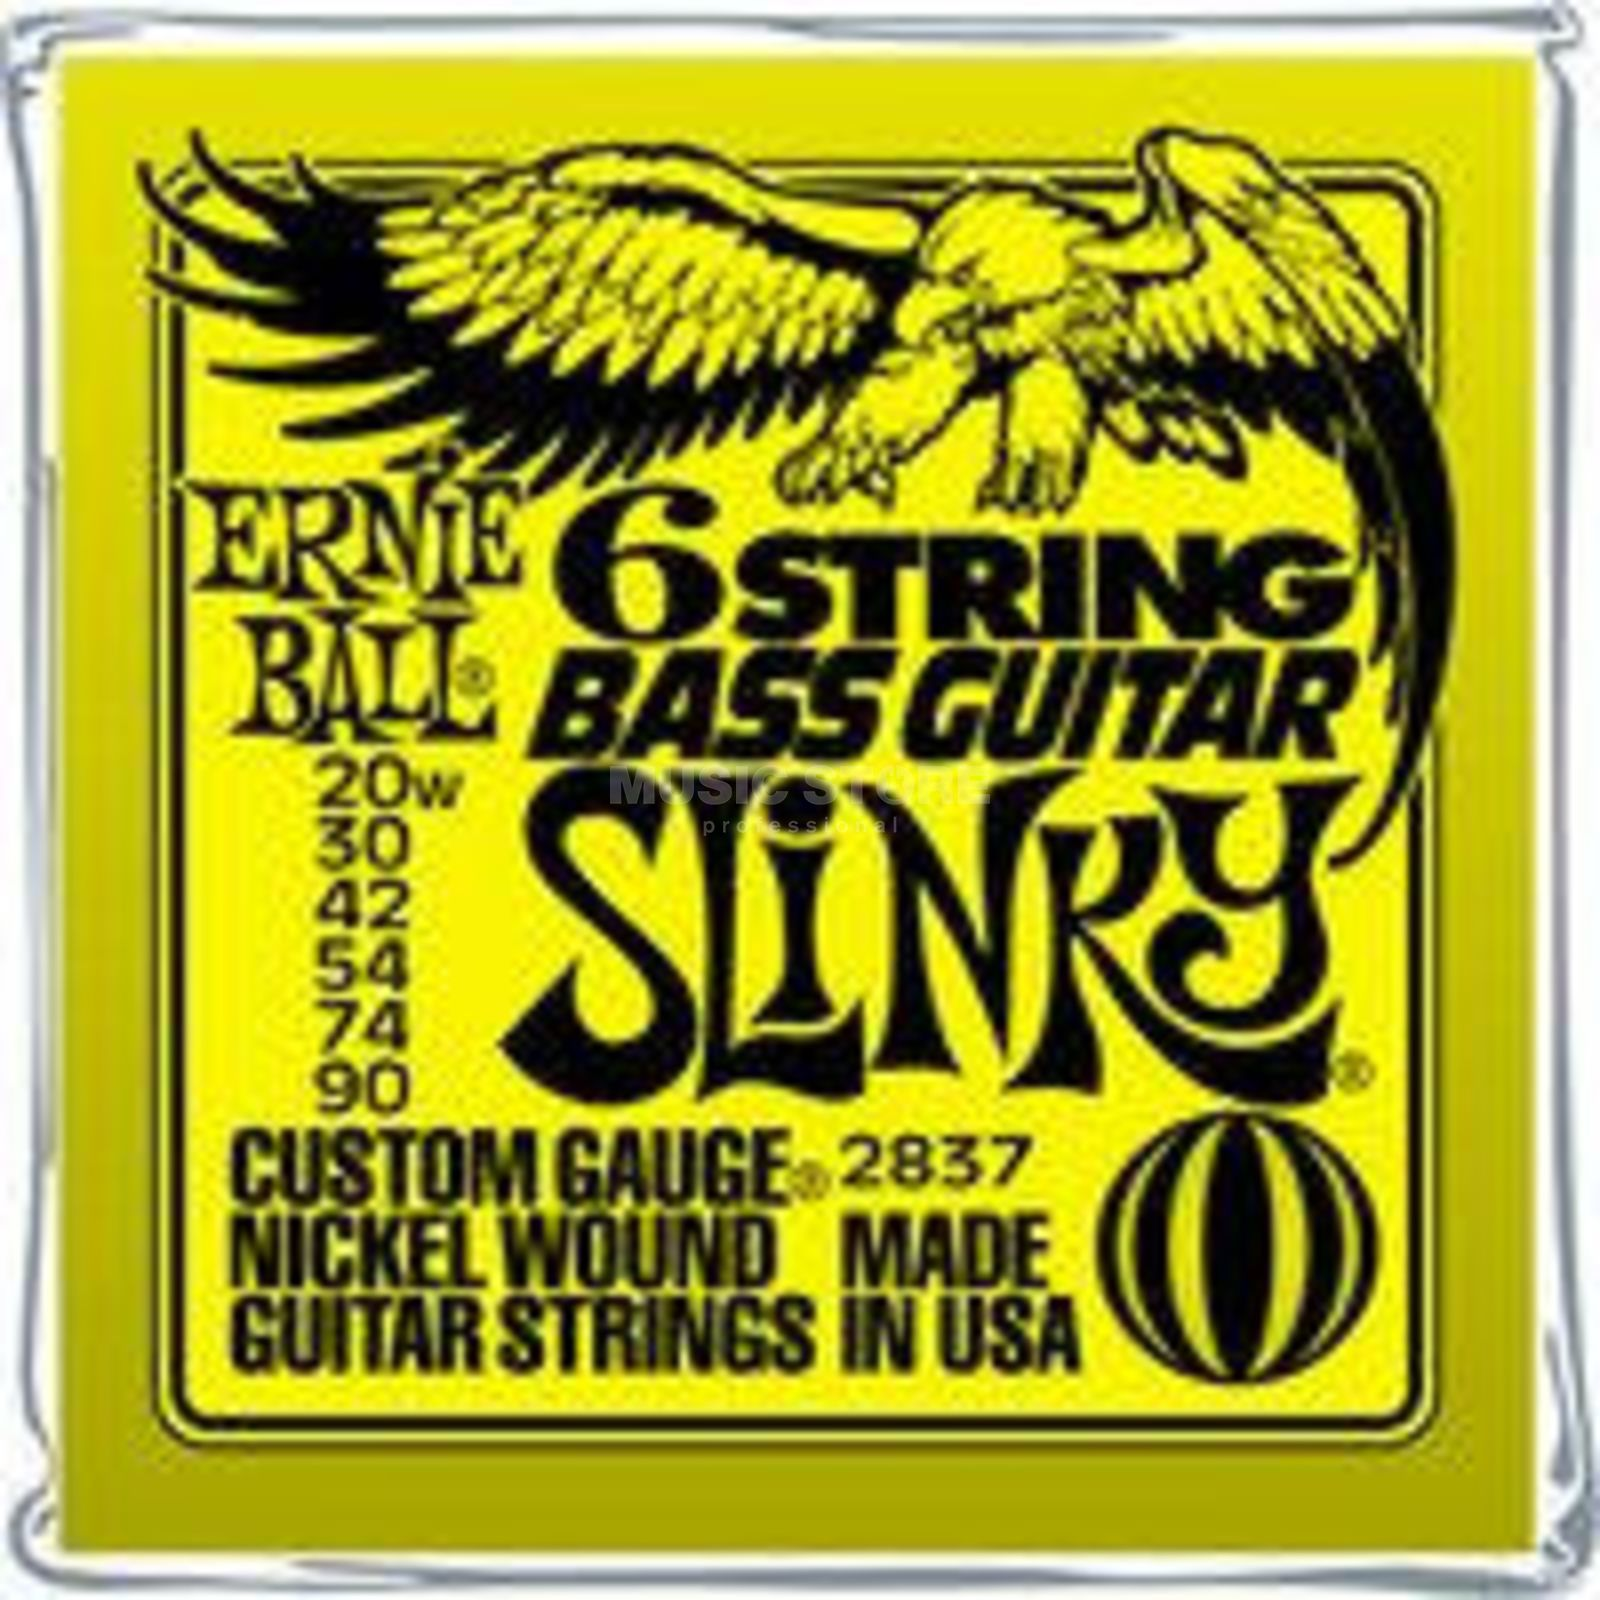 Ernie Ball EB2837 20-90 6-string Baritone Slinky Nickel Plated Изображение товара